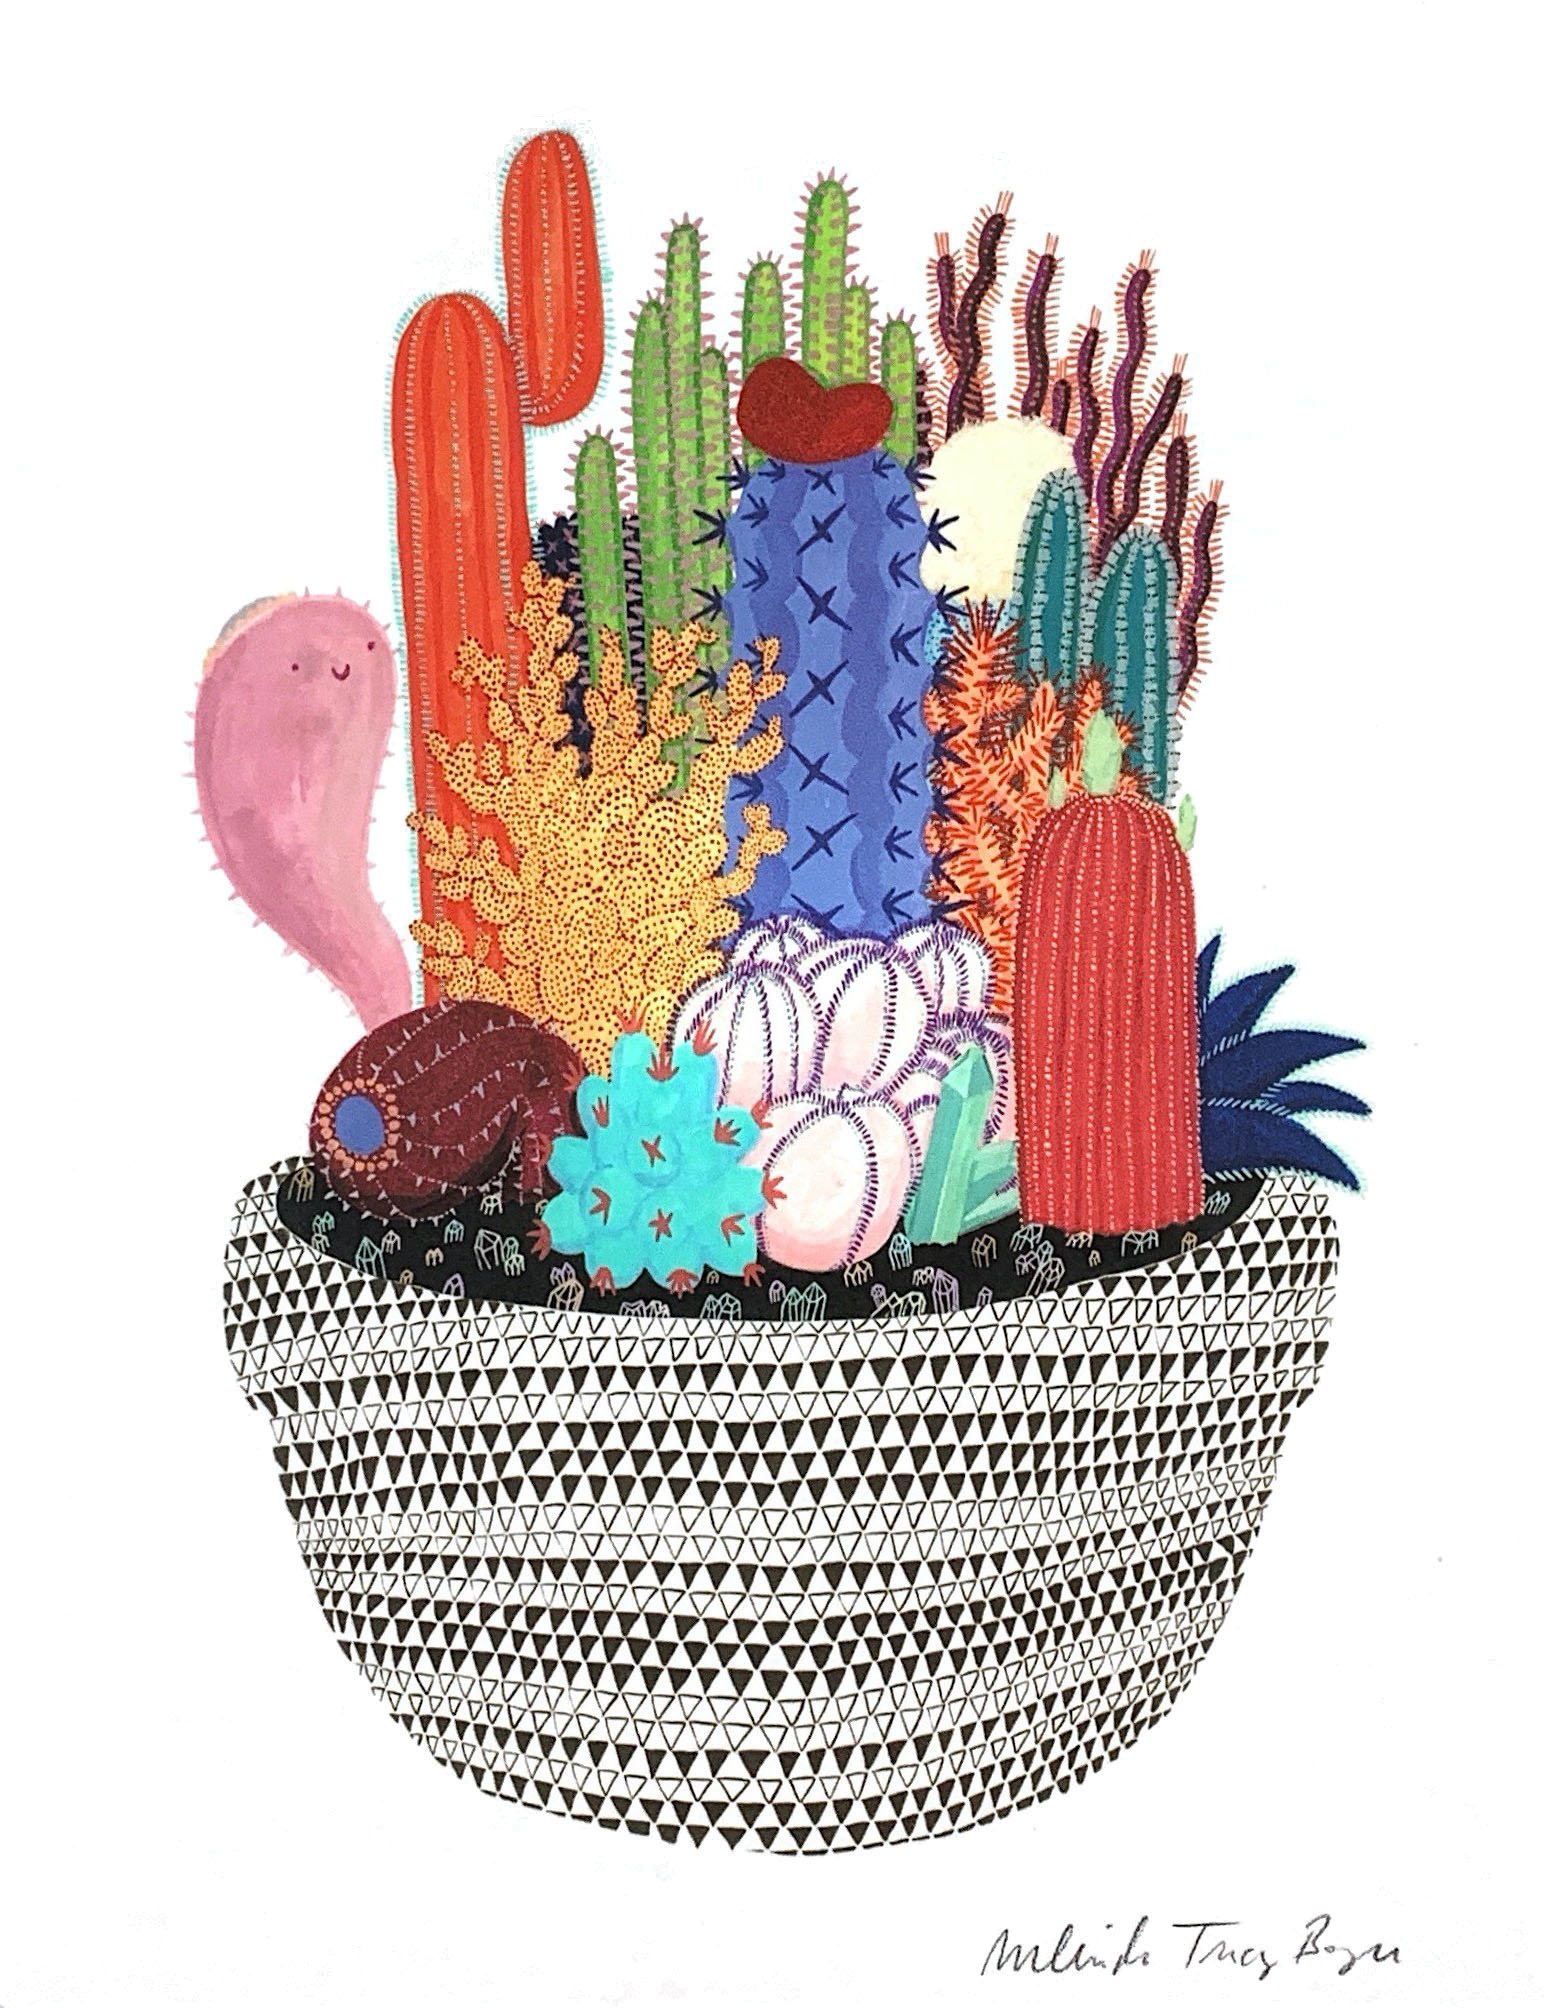 A whimsical illustration of different types of cacti arranged in a patterned planter.